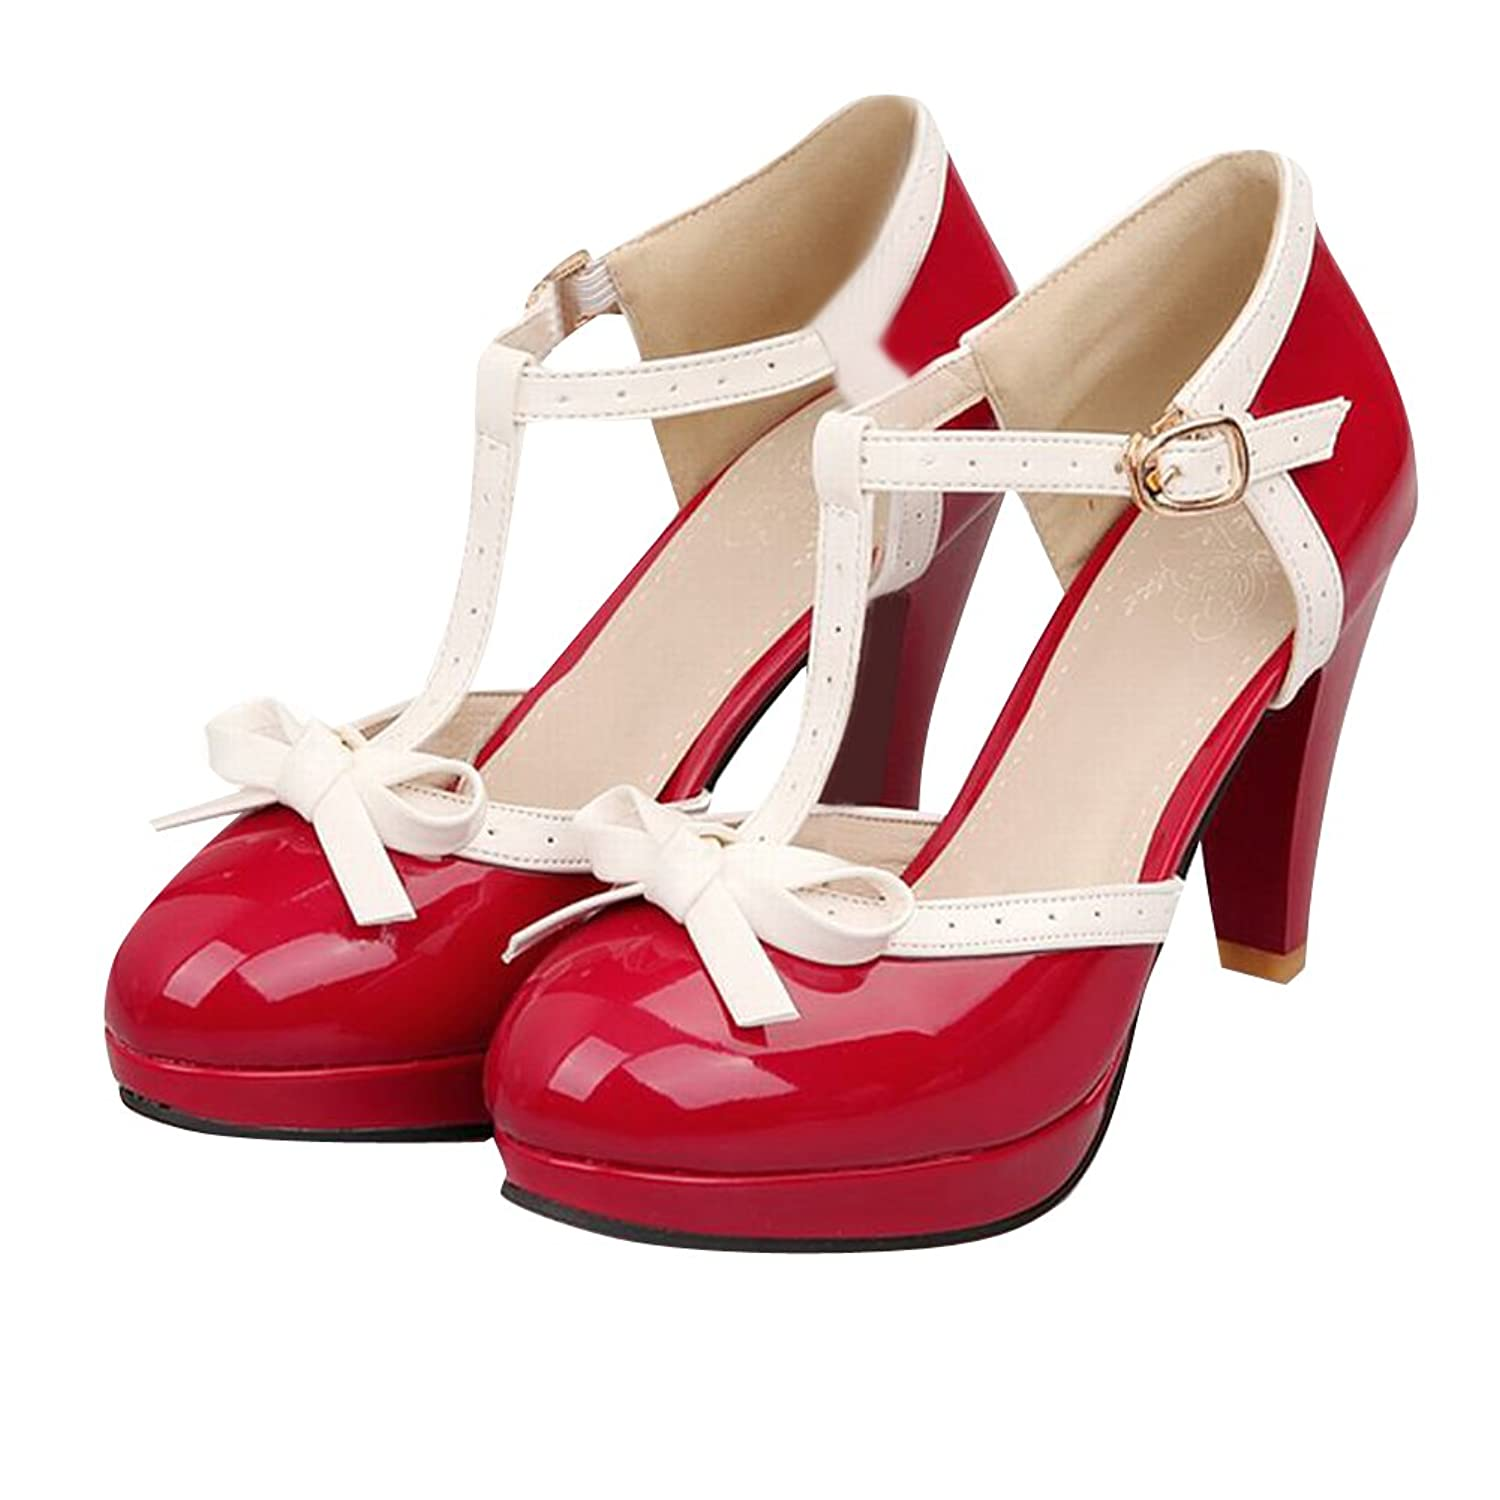 Pin Up Shoes- Heels, Pumps & Flats Carol Shoes Fashion T Strap Bows Womens Platform High Heel Pumps Shoes $28.00 AT vintagedancer.com